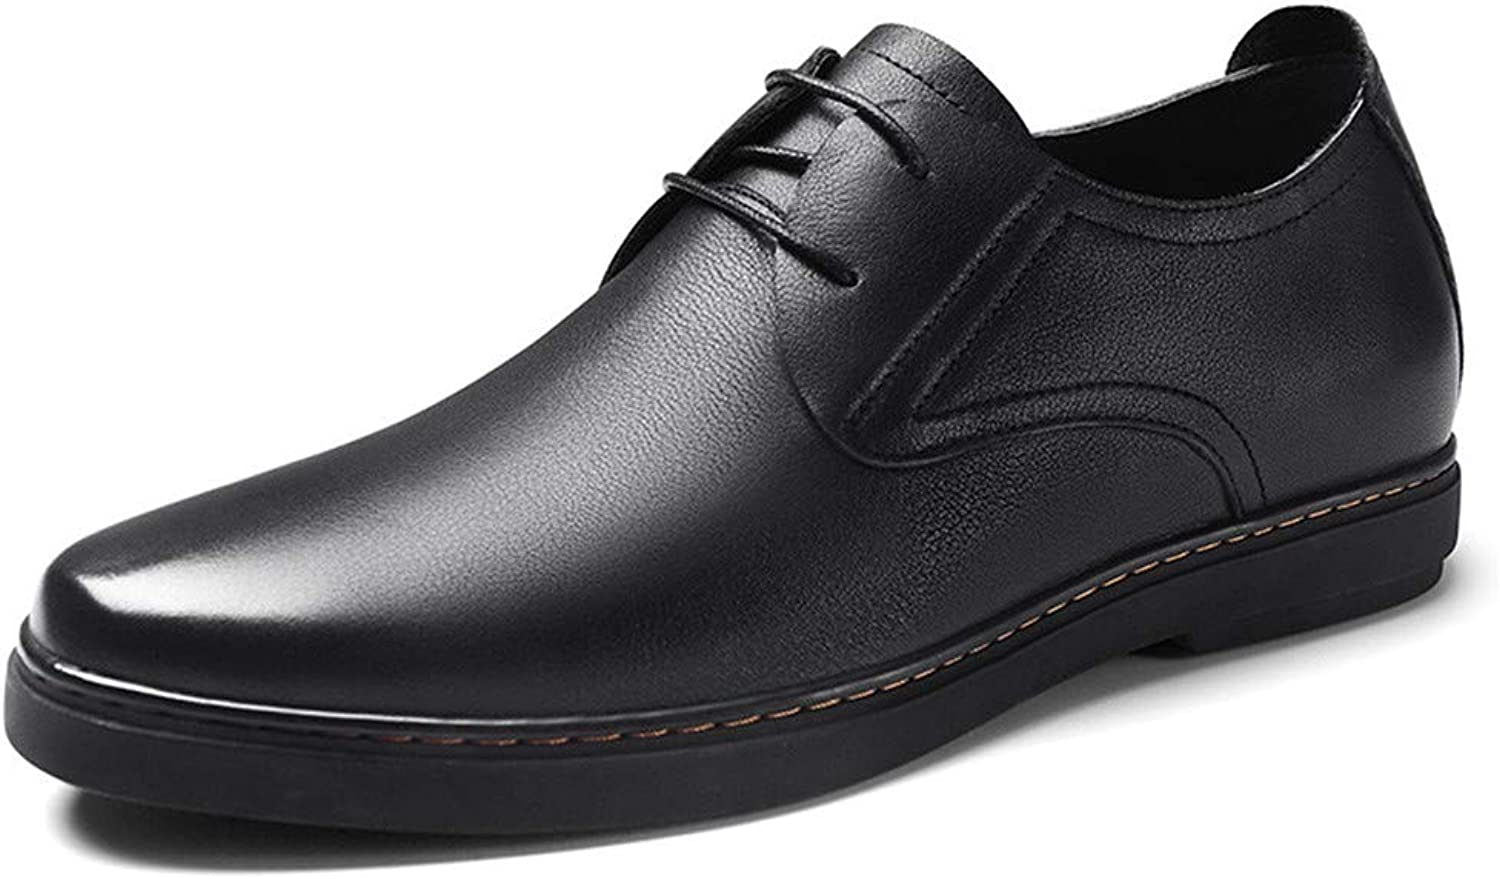 GOG Height Increasing Elevator Lace Up Derby shoes or Slip on Loafer shoes Leather